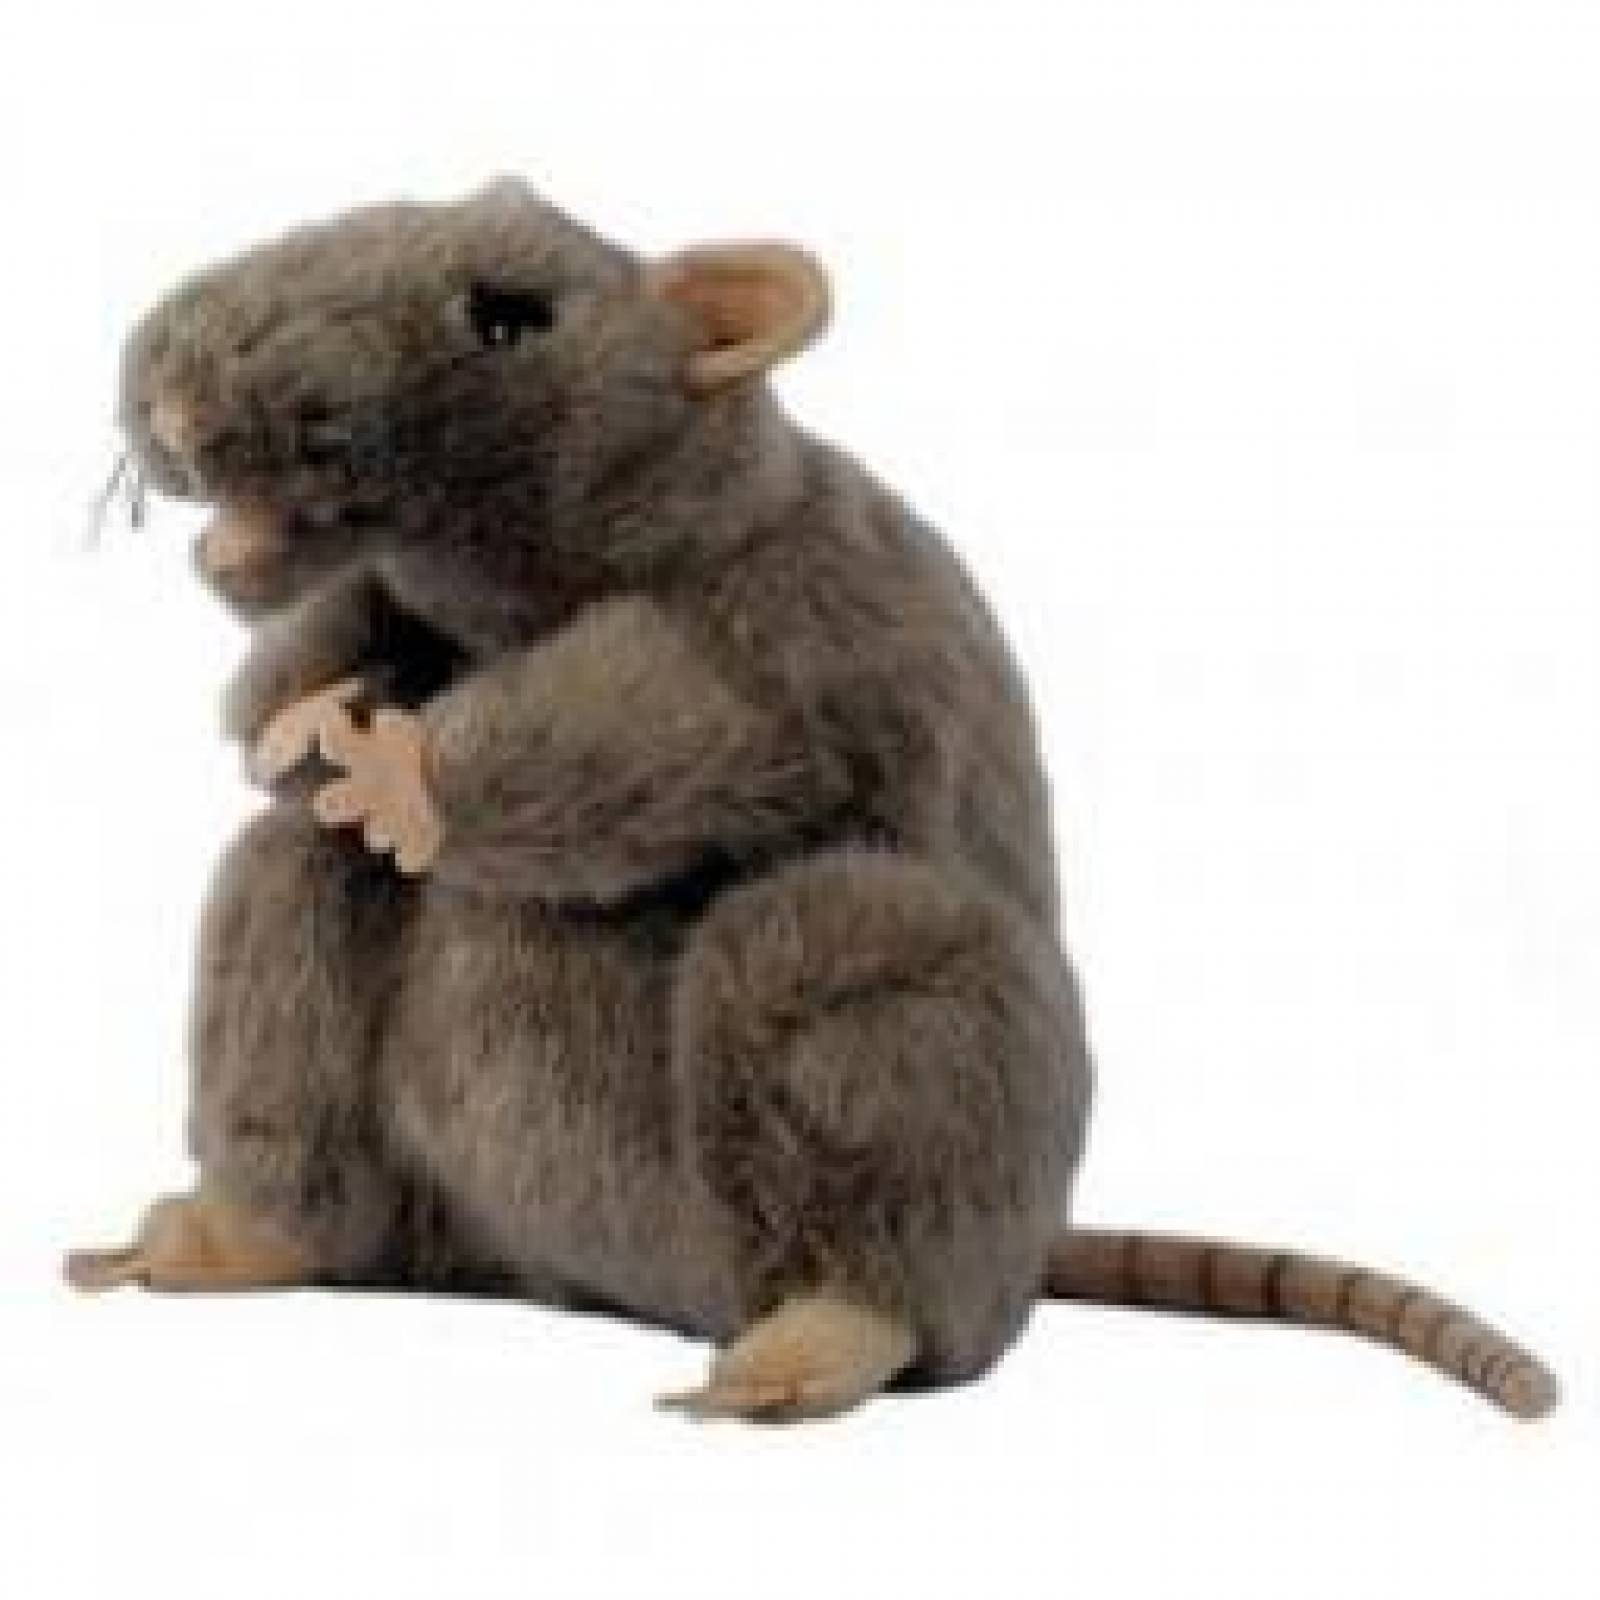 GREY RAT Plump Glove Puppet European Wildlife